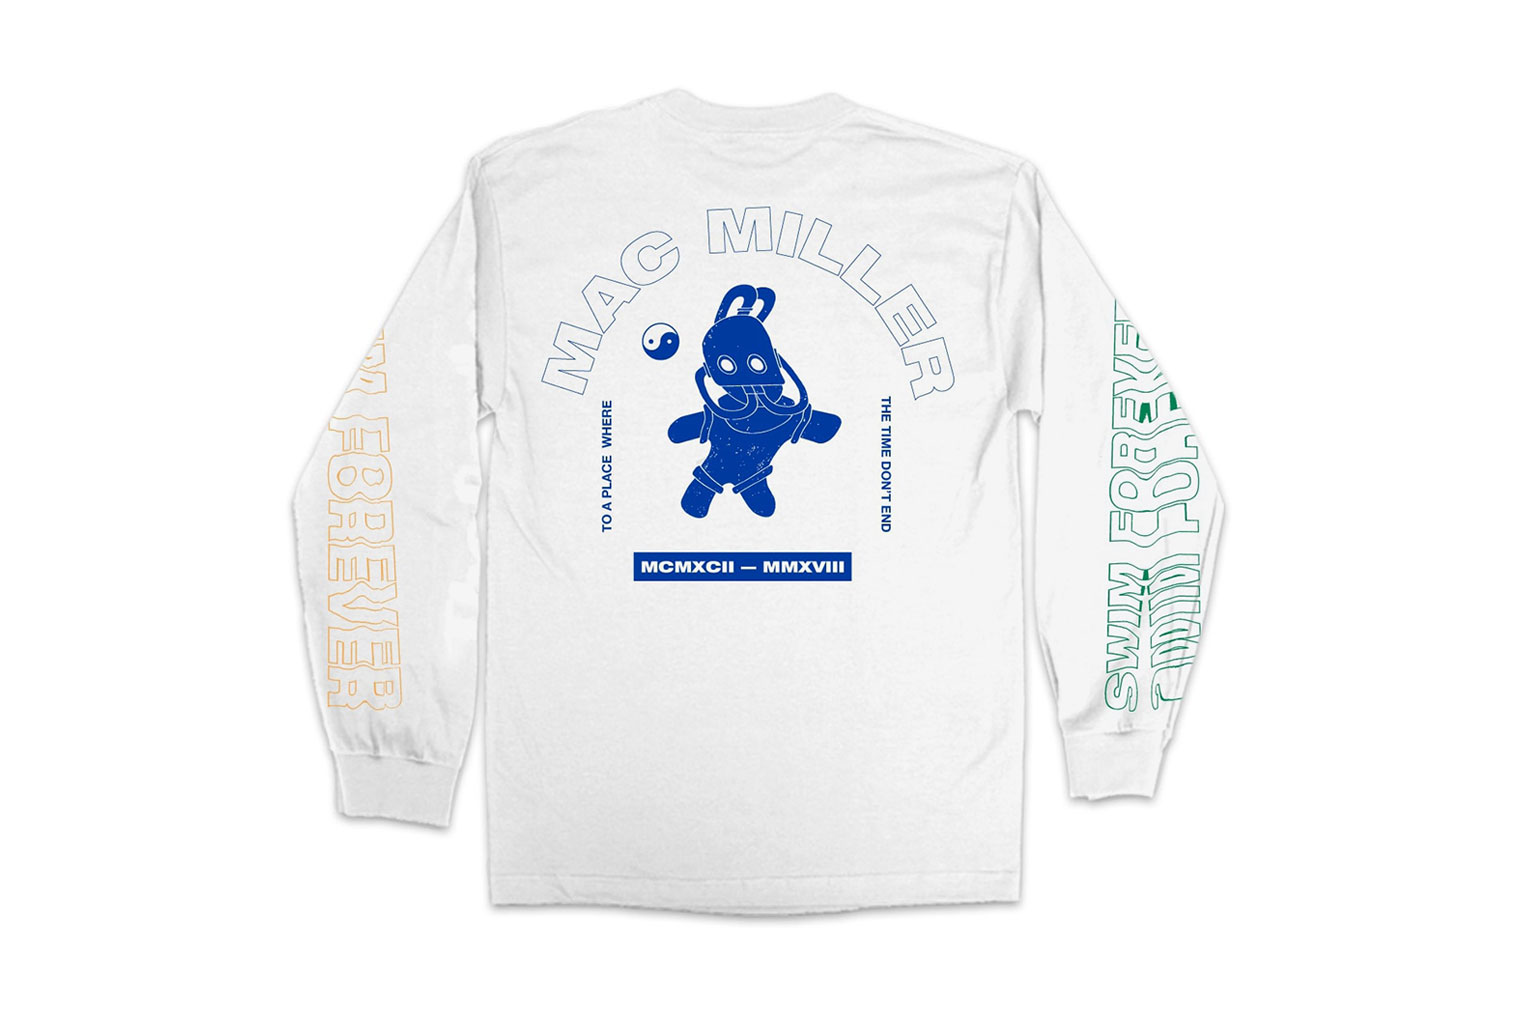 John Mayer Swim Forever Mac Miller T-Shirt Jeremy Dean A Celebration of Life Long sleeve White